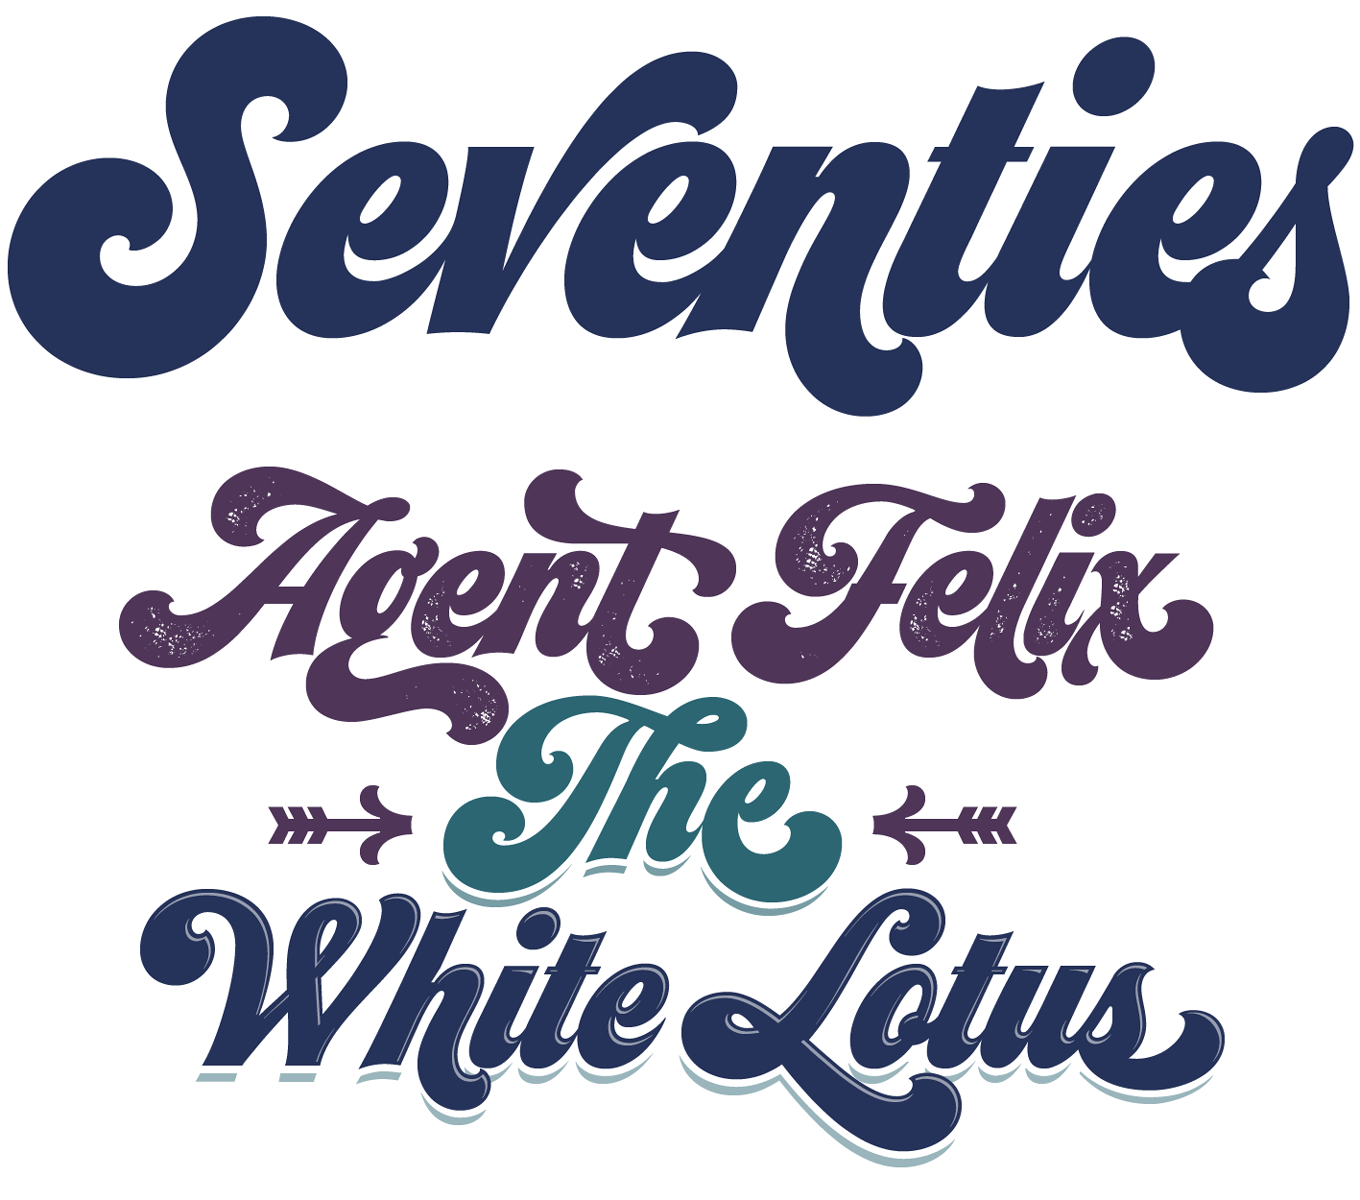 Seventies Font Sample   typography   Pinterest   Fonts and Typography